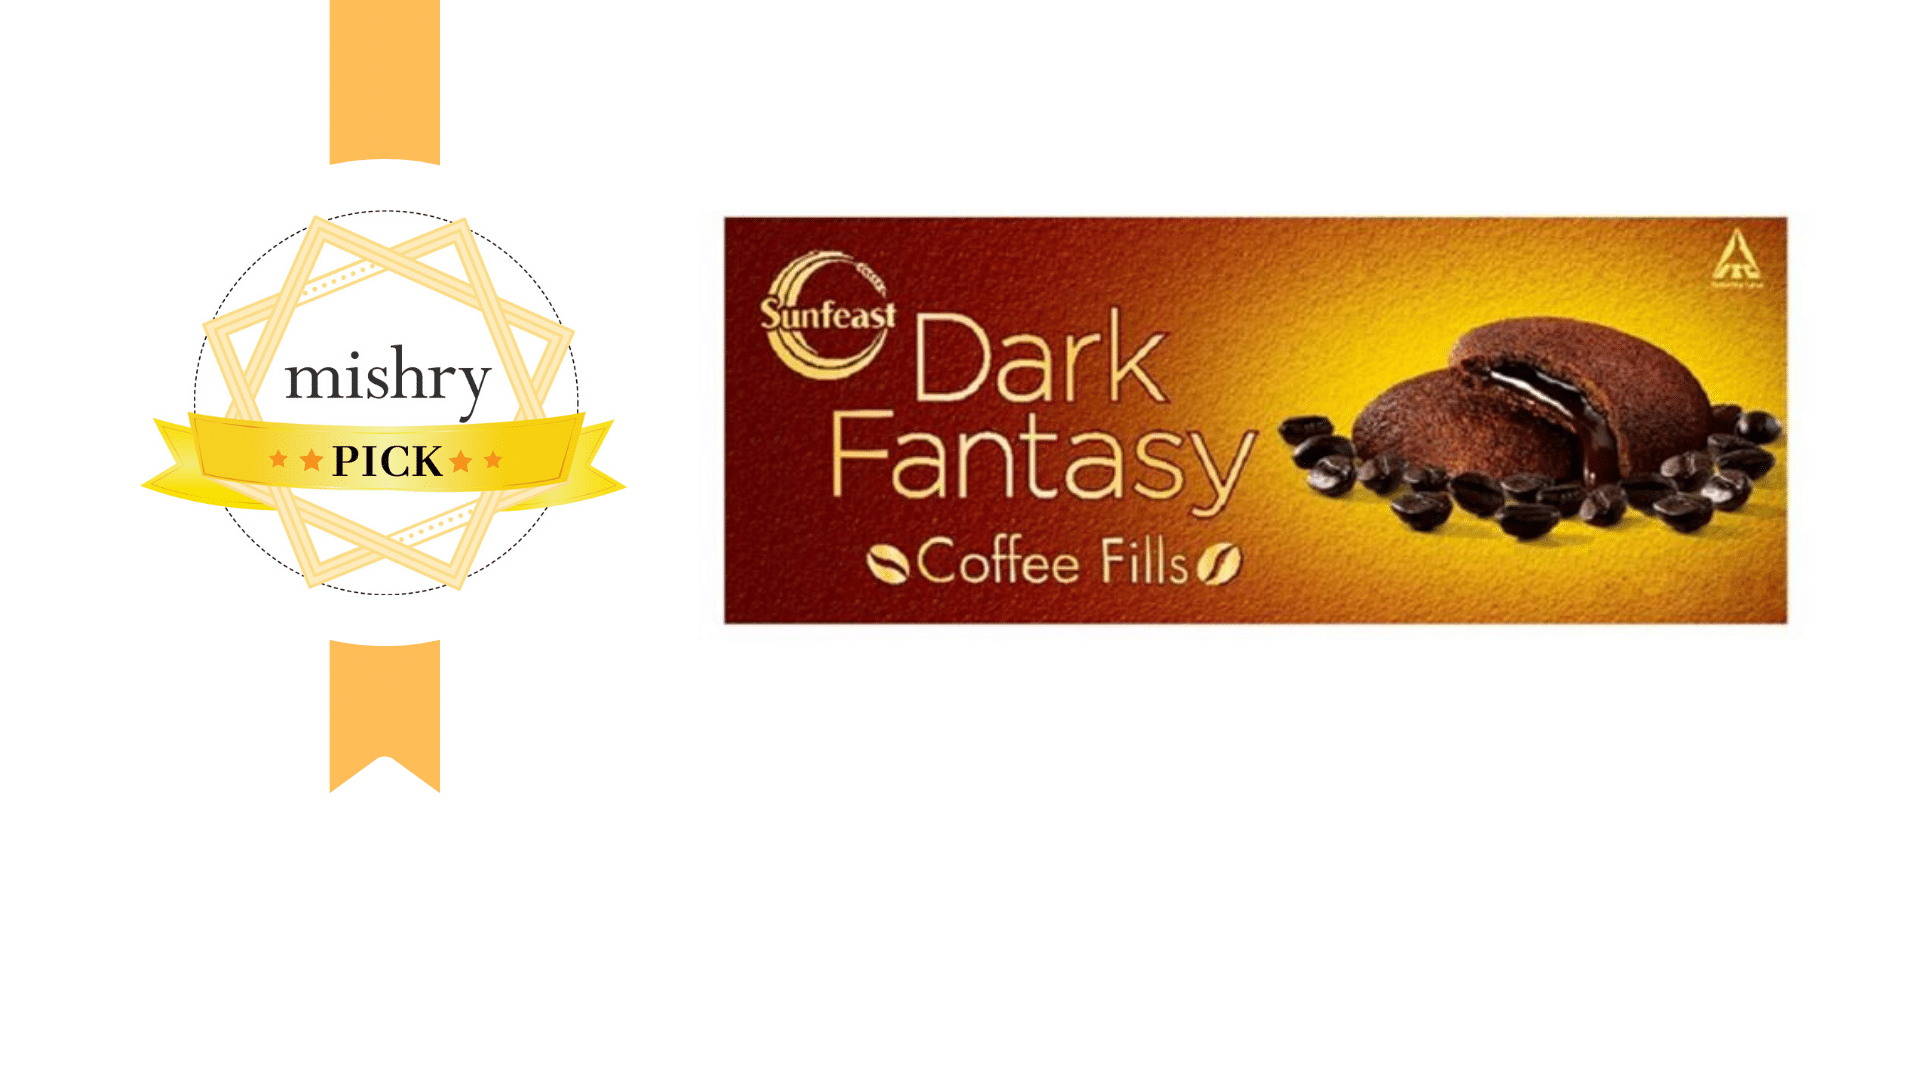 Sunfeast's Dark Fantasy Coffee Fills-mishry